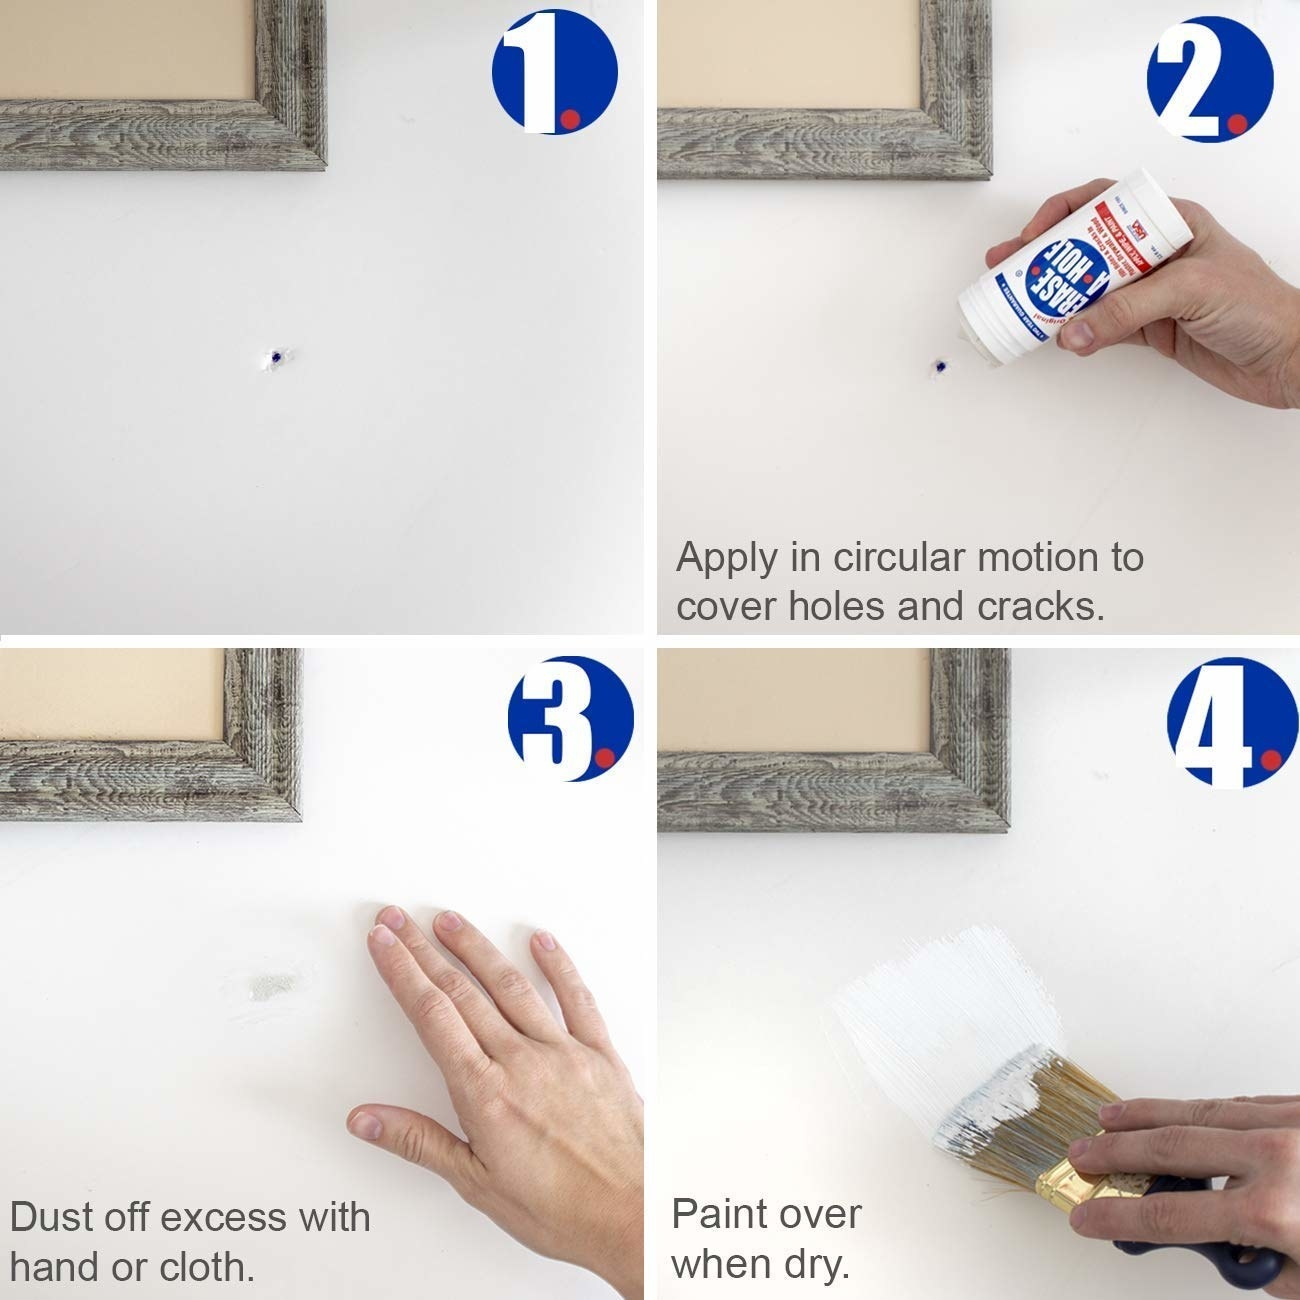 A series of photos showing how to apply the drywall repair putty